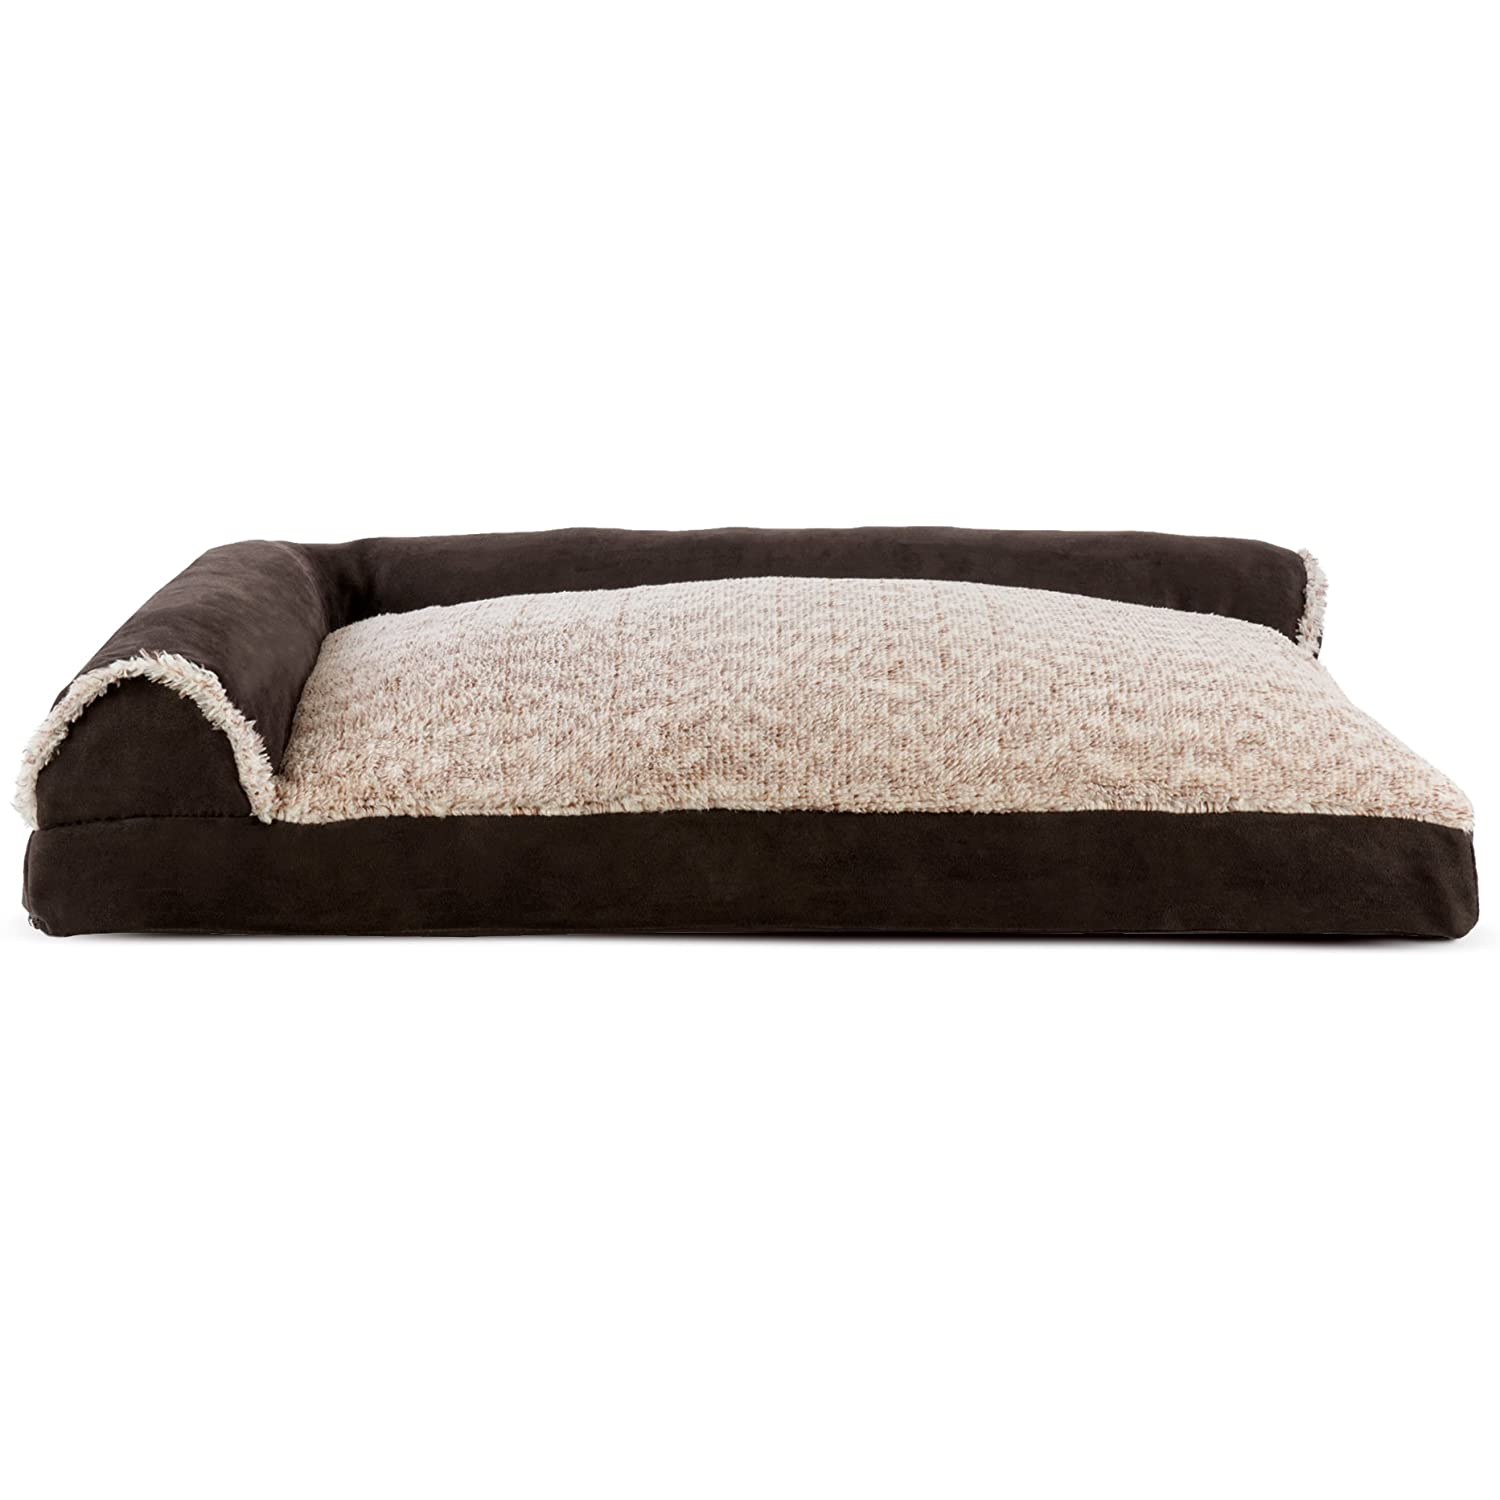 Furhaven Pet Dog Bed   Faux Fur & Suede L-Shaped Chaise Lounge Pillow Sofa-Style Pet Bed for Dogs & Cats, Espresso, Large